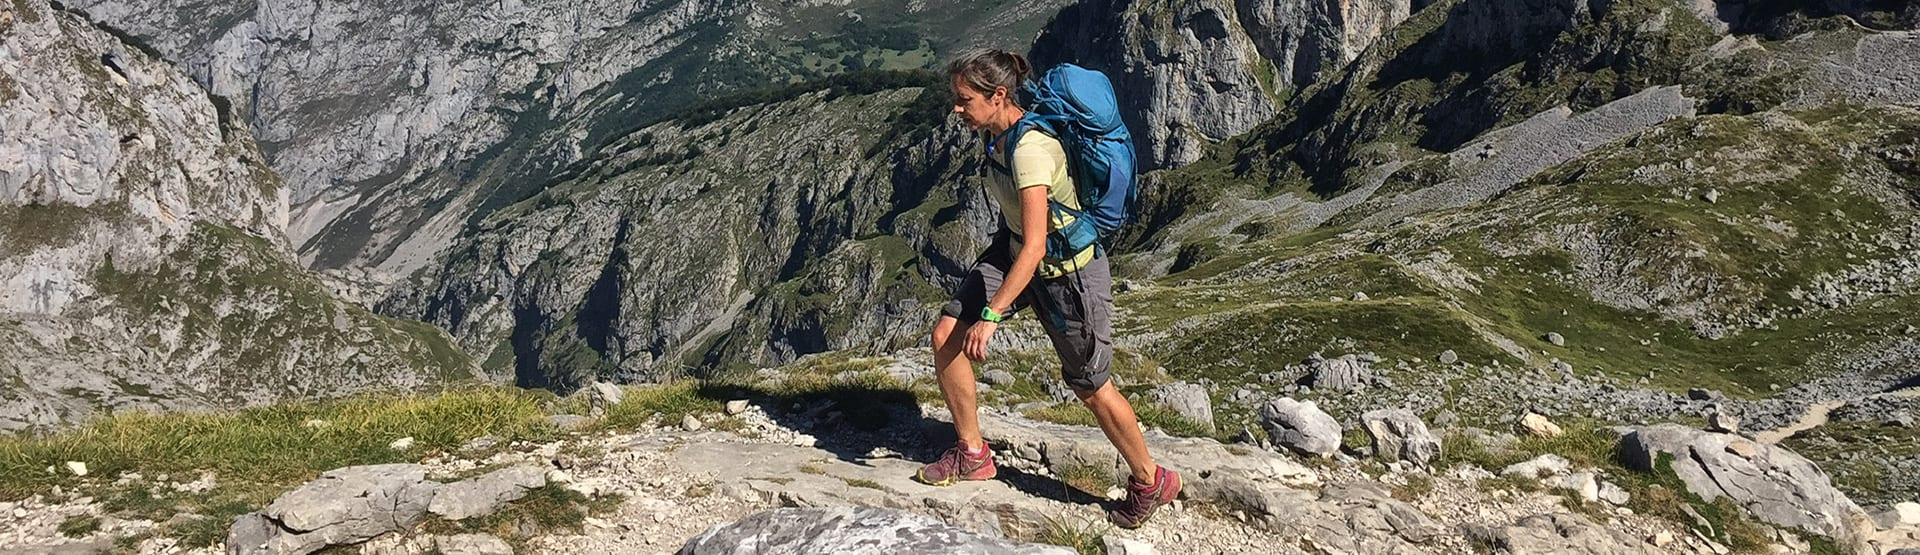 Hiking the Picos de Europa's classic peaks